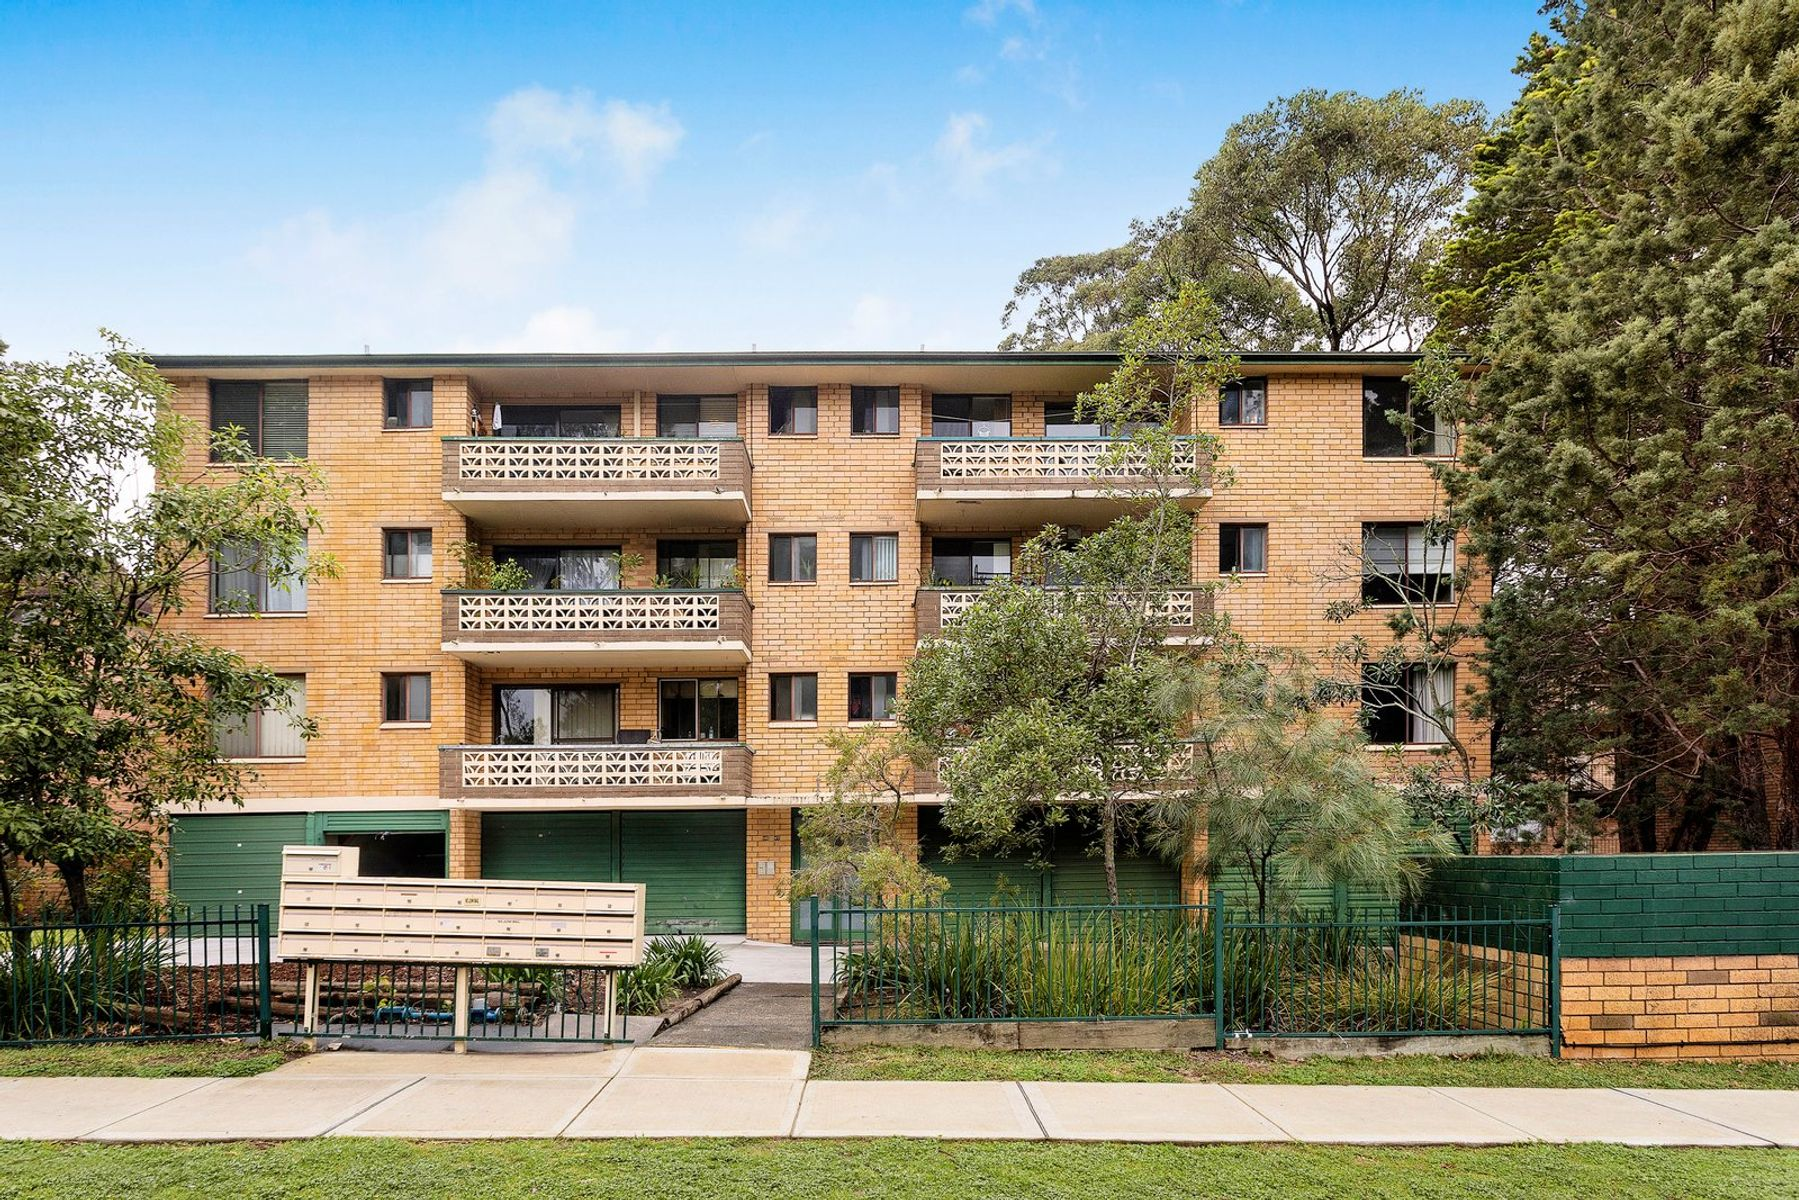 2/45-47 Fontenoy Road, Macquarie Park, NSW 2113